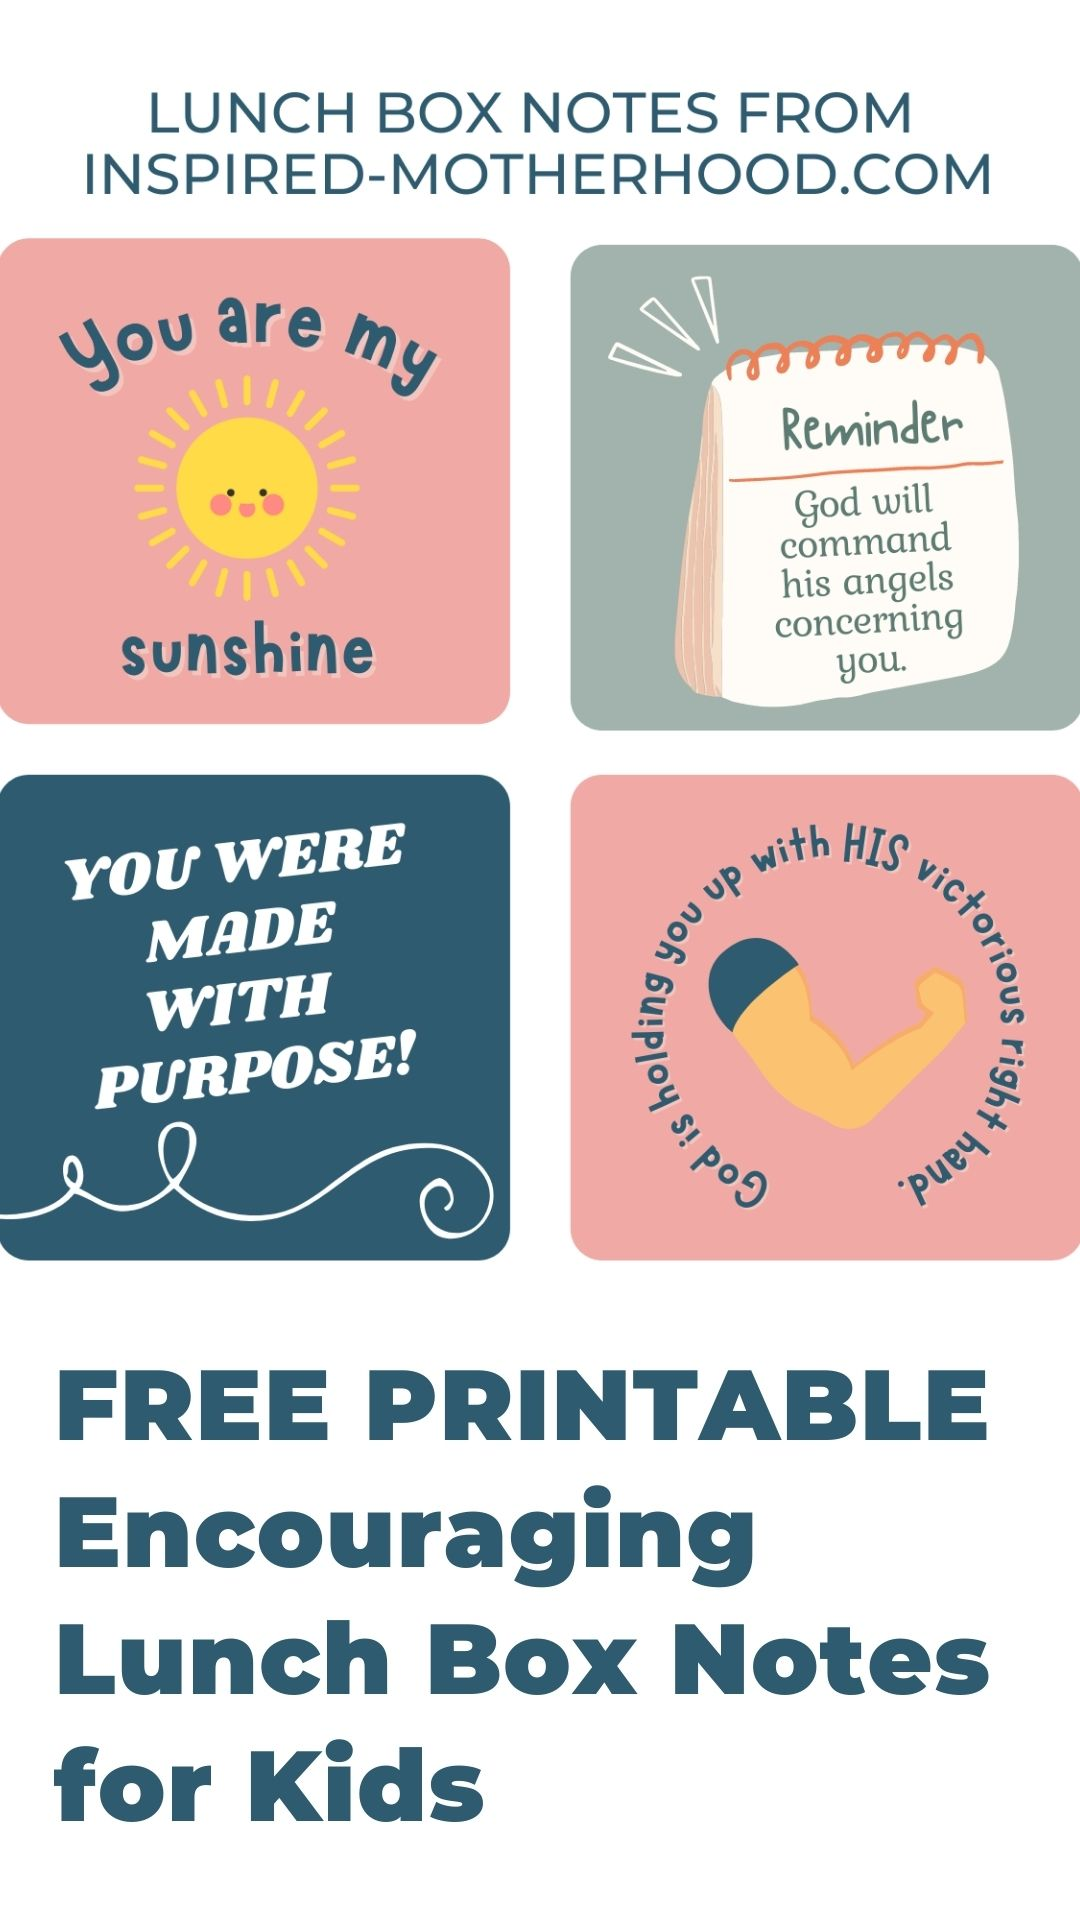 Speak life over your children with these printable lunch box notes. Encourage your children throughout the day with God's promises.